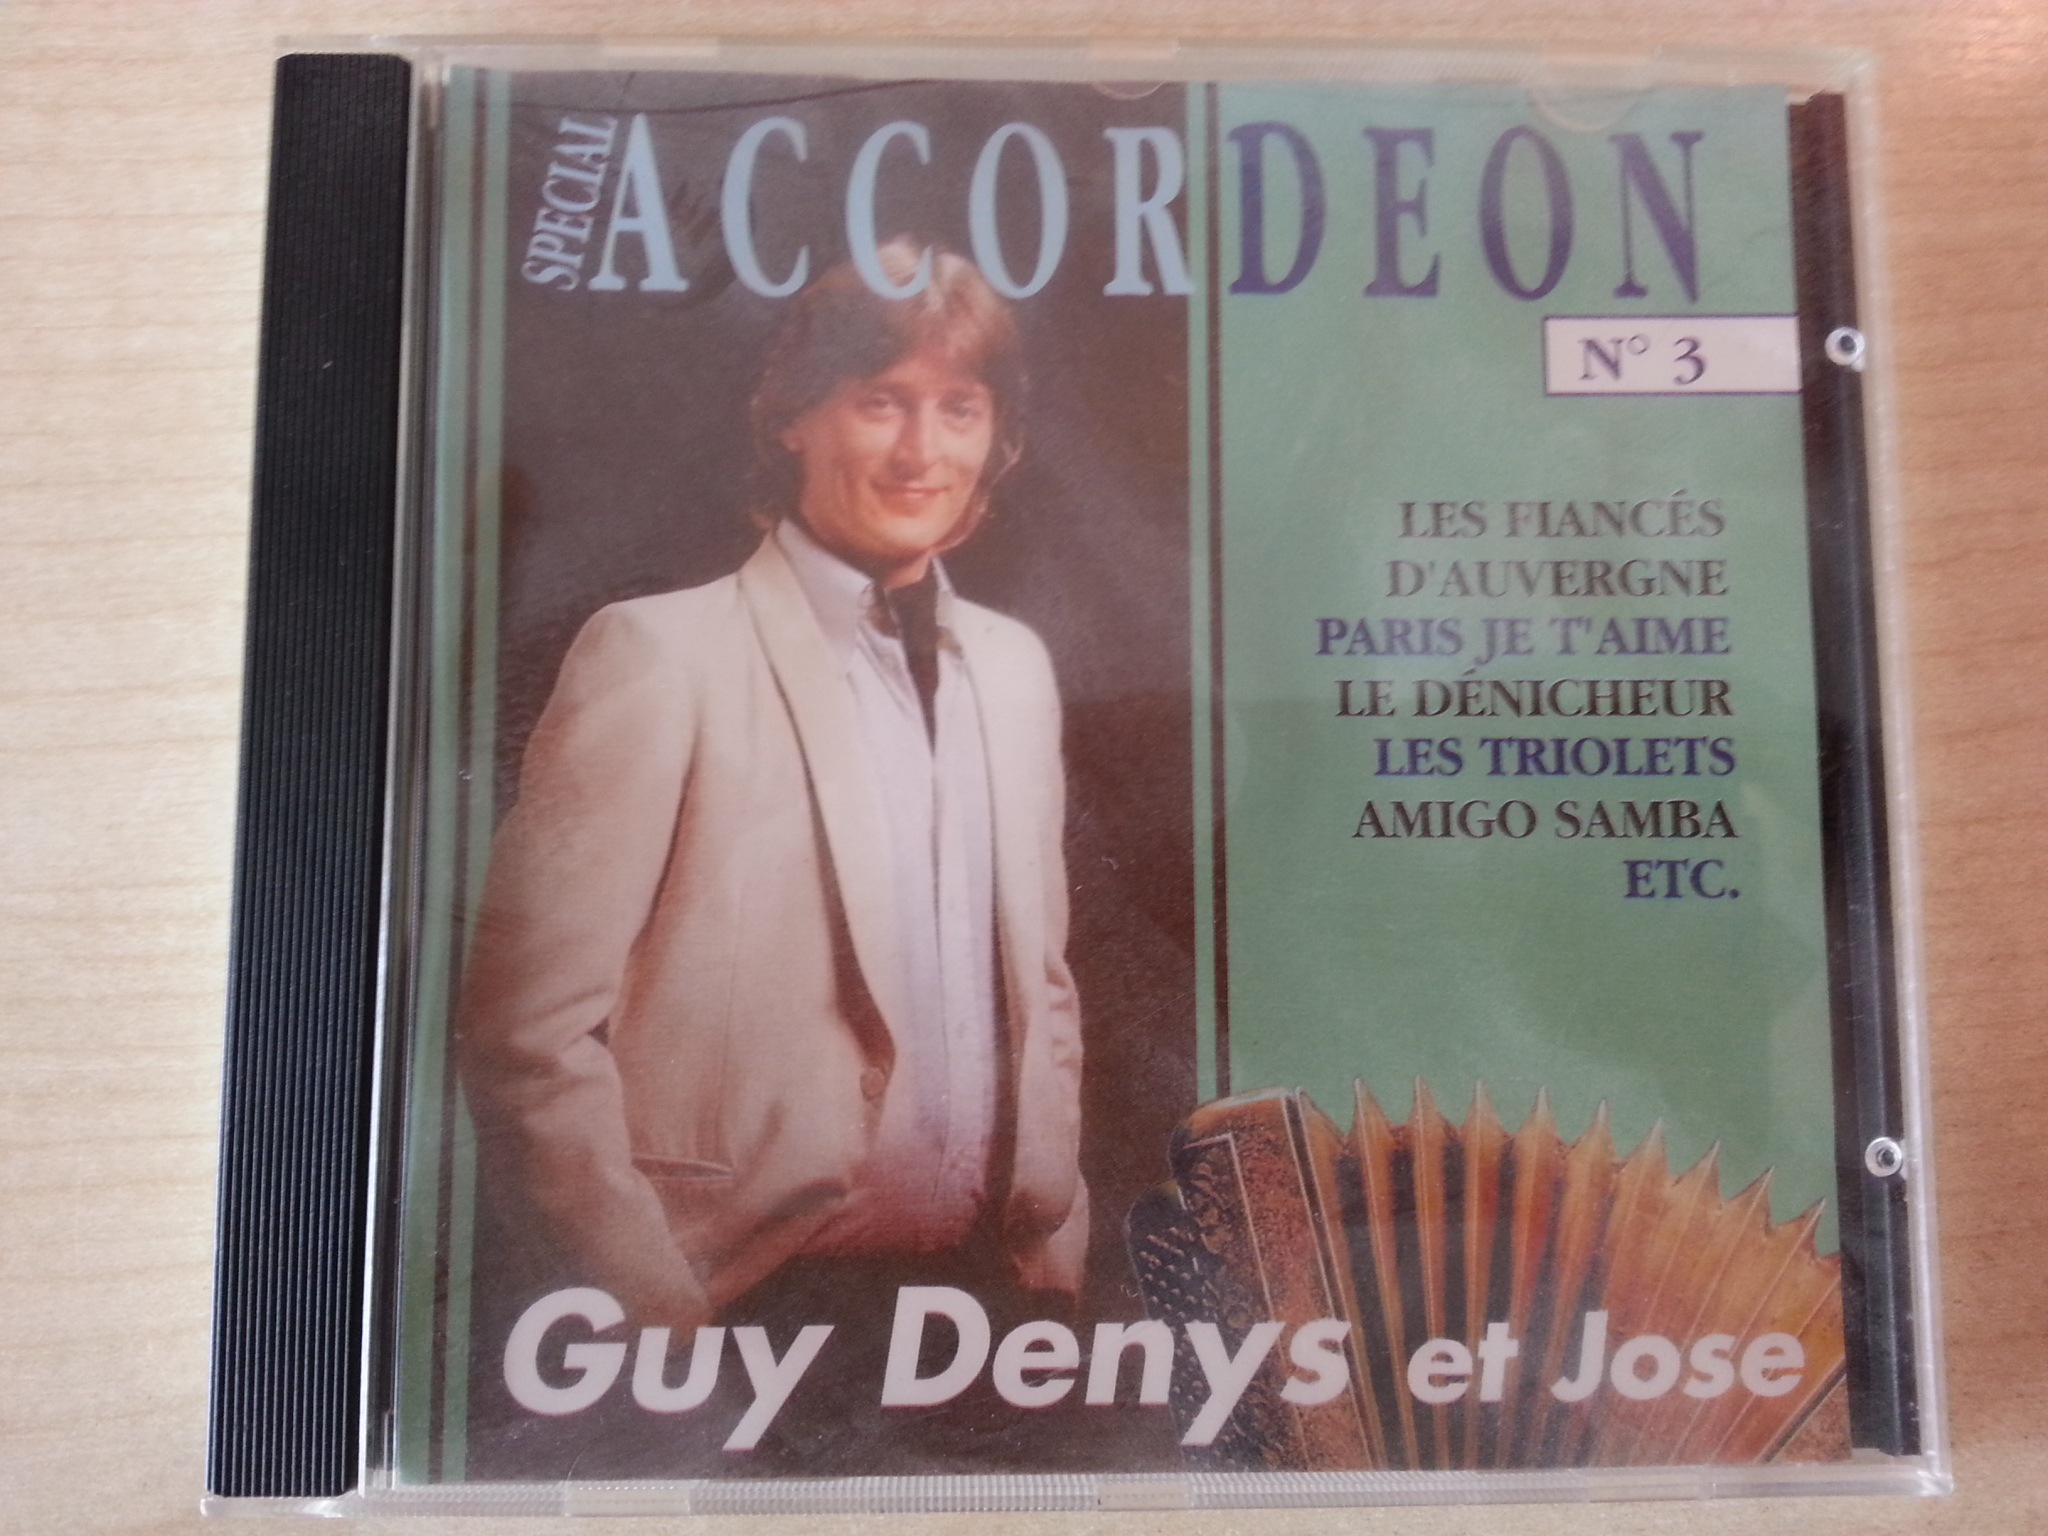 CD: Accordeon- Guy Denya et Jose kostenlos